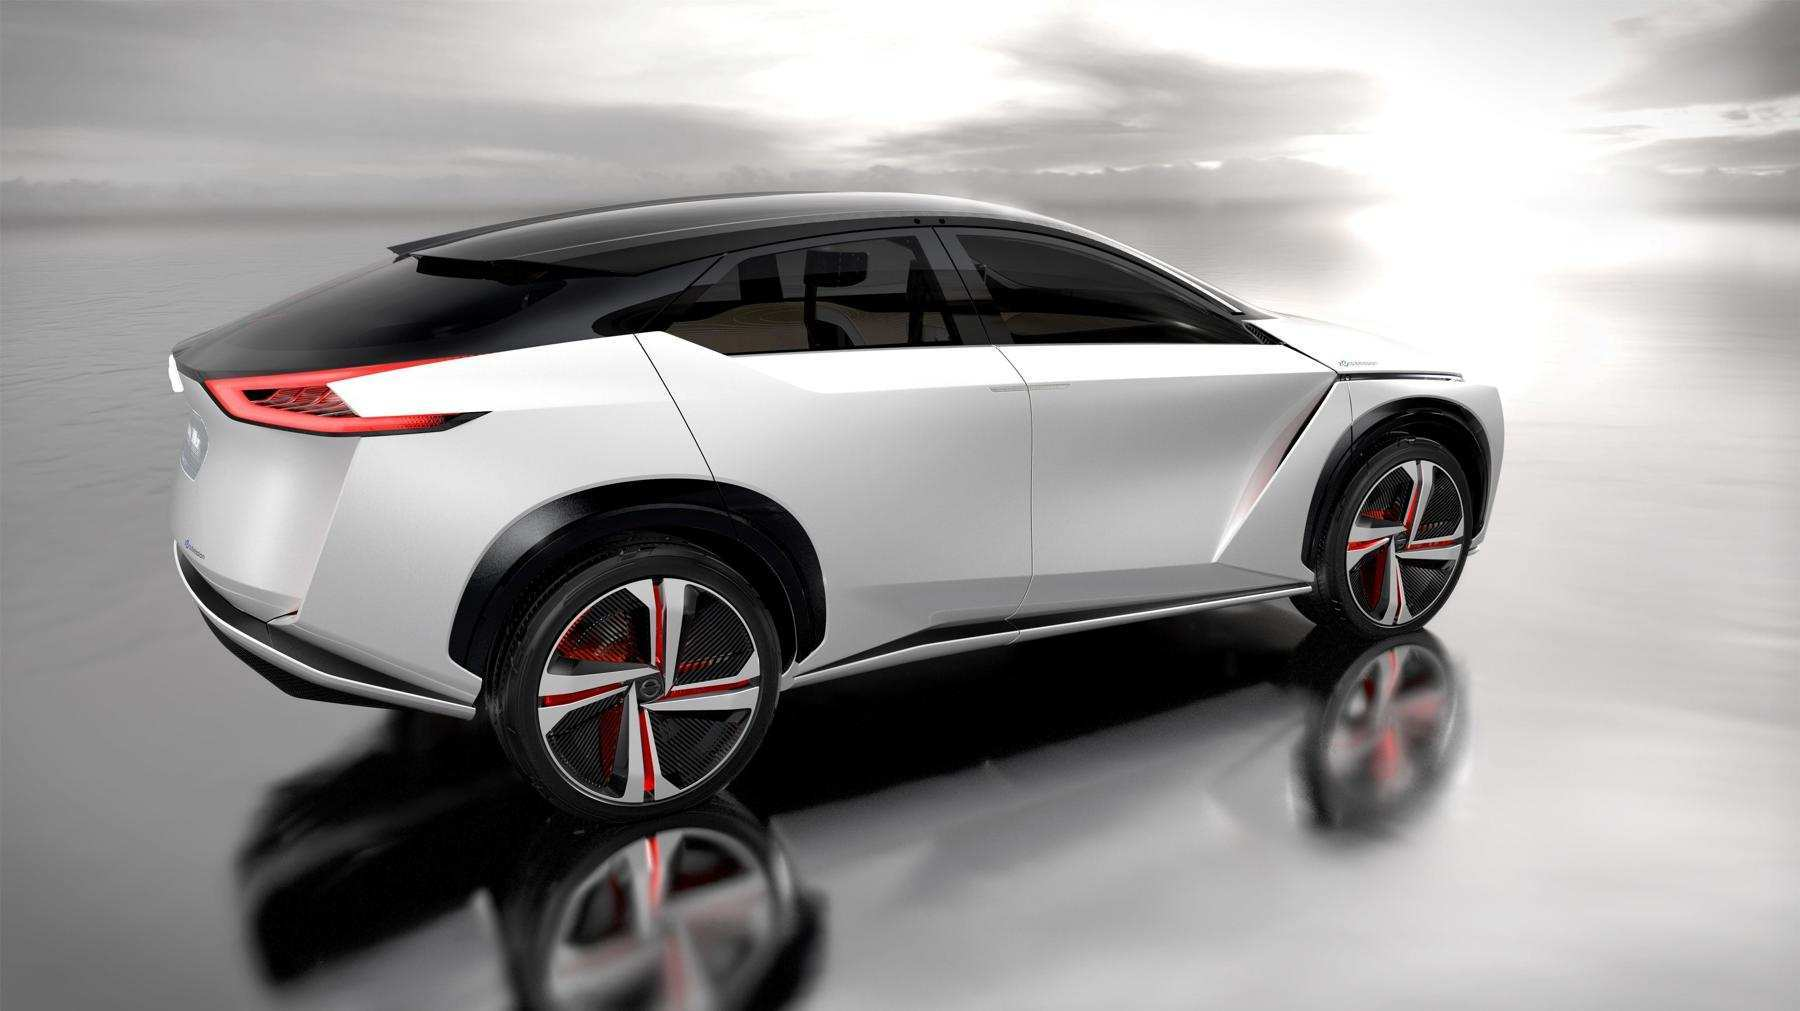 30 The Best Nissan Imx 2020 Price And Release Date